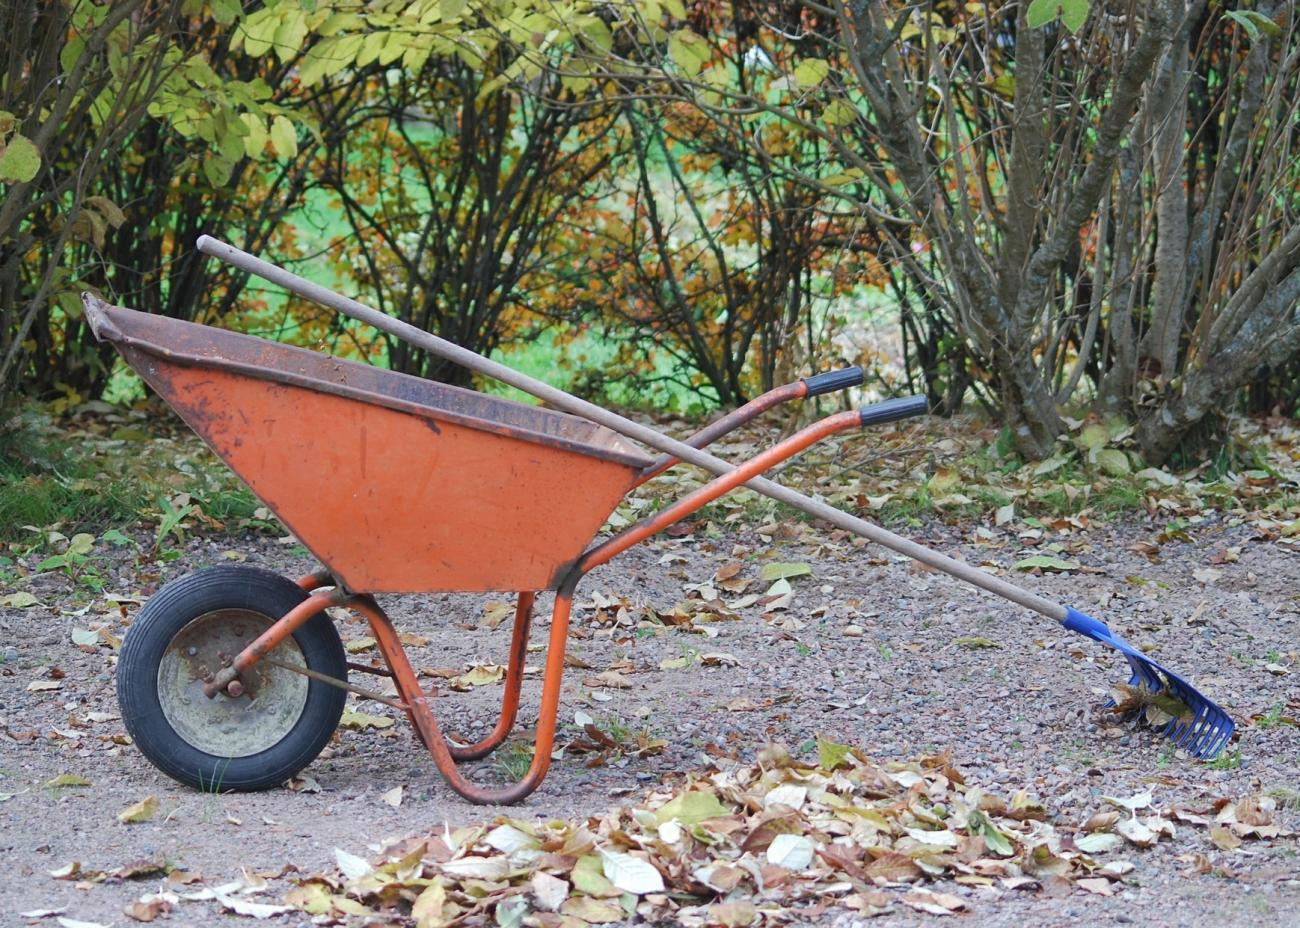 Preparing your garden for winter top fall gardening tasks - How to prepare garden for winter ...